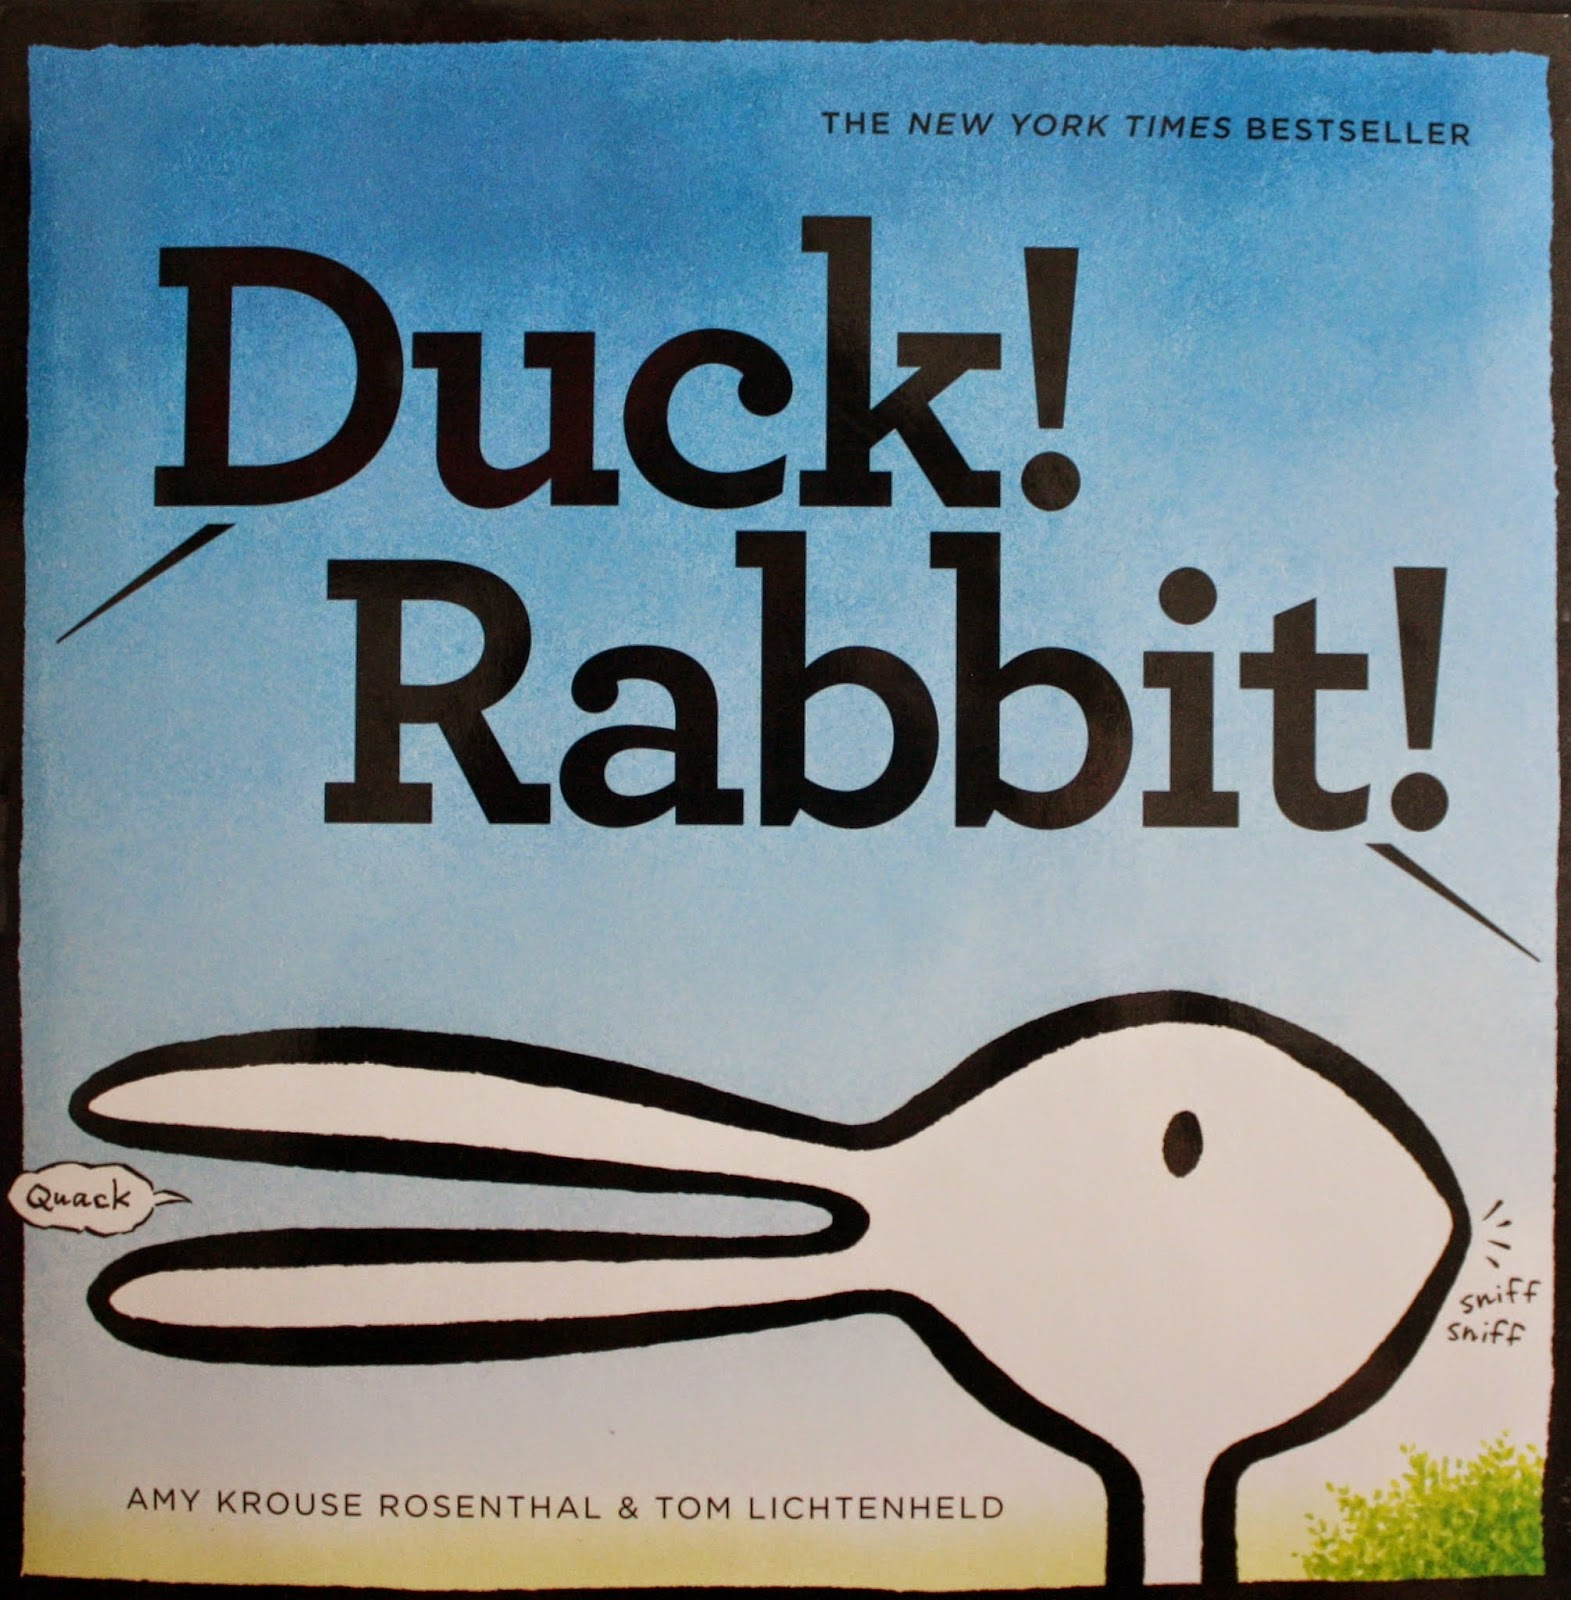 http://www.amazon.com/Duck-Rabbit-Amy-Krouse-Rosenthal/dp/0811868656/ref=sr_1_1?ie=UTF8&qid=1410287597&sr=8-1&keywords=Duck!+Rabbit!